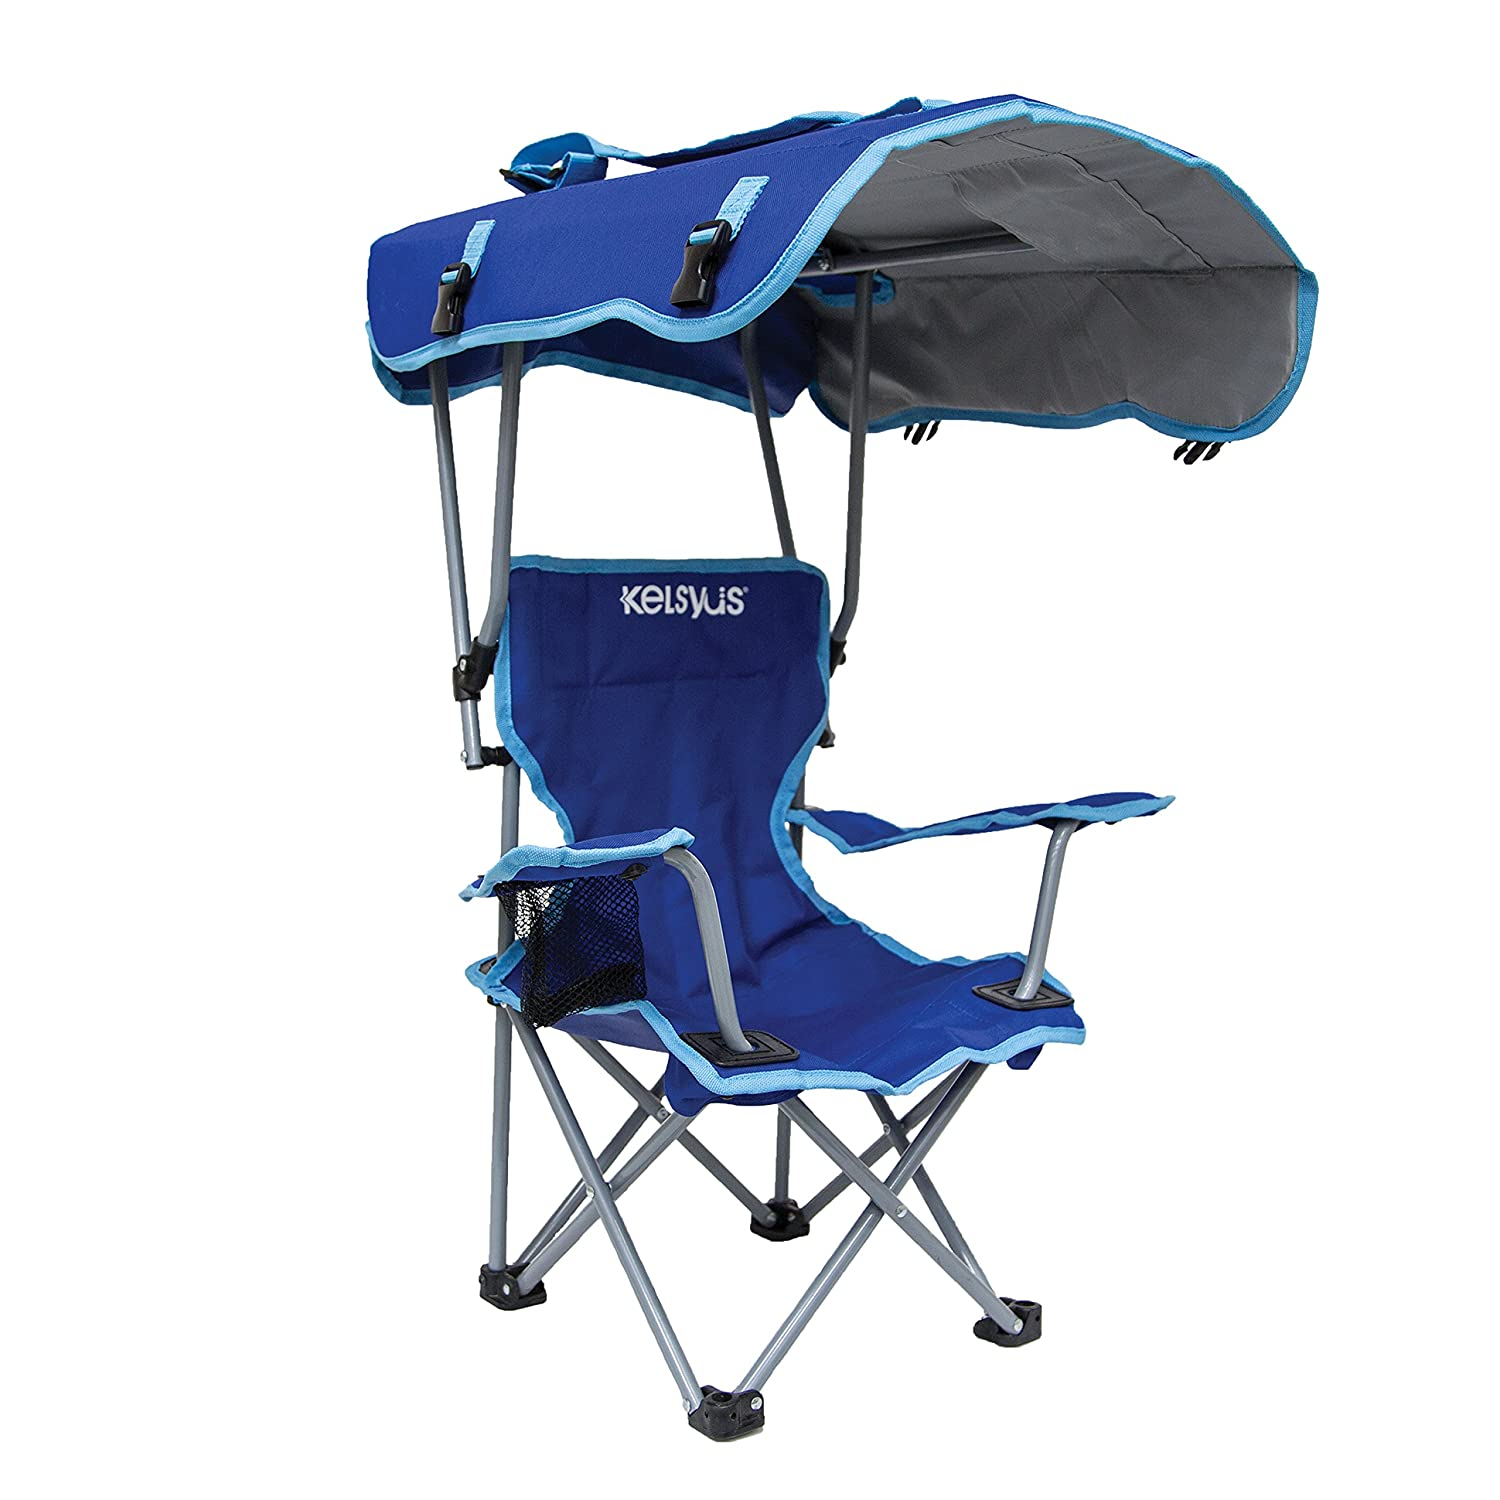 Kelsyus Kids Outdoor Canopy Chair - Foldable Children's Chair for Camping, Tailgates, and Outdoor Events